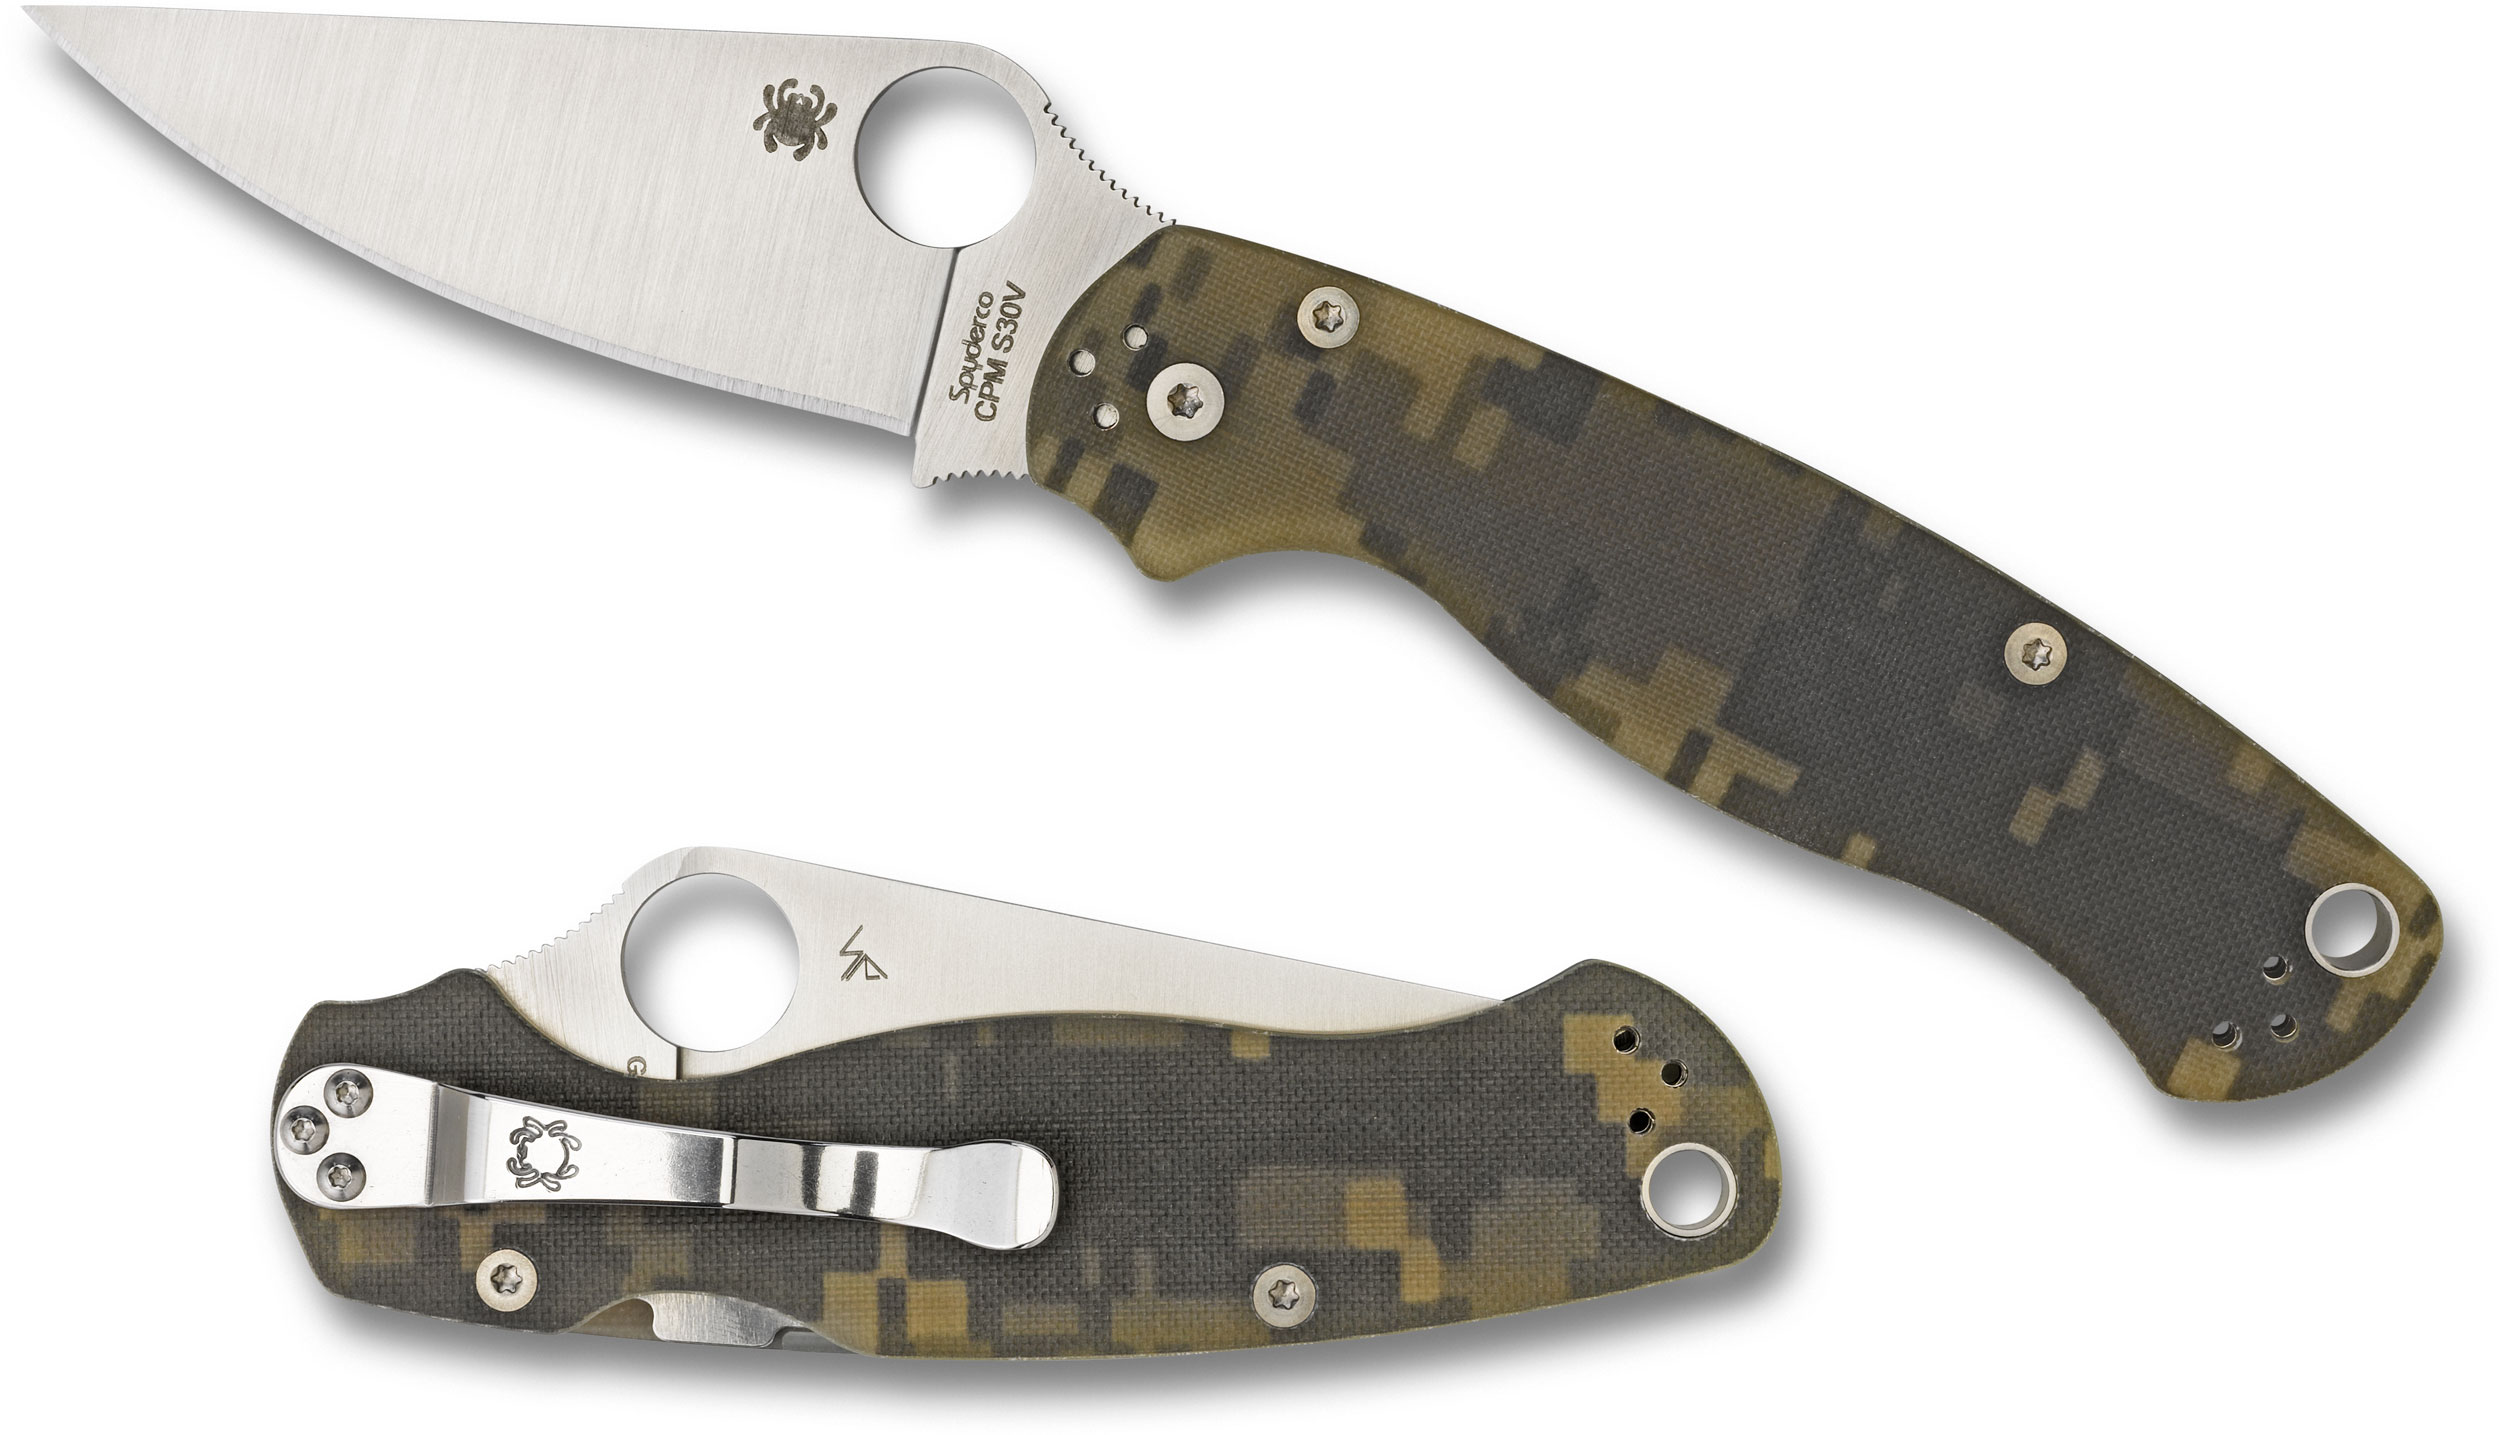 Buy American Made Spyderco Products at KnifeCenter